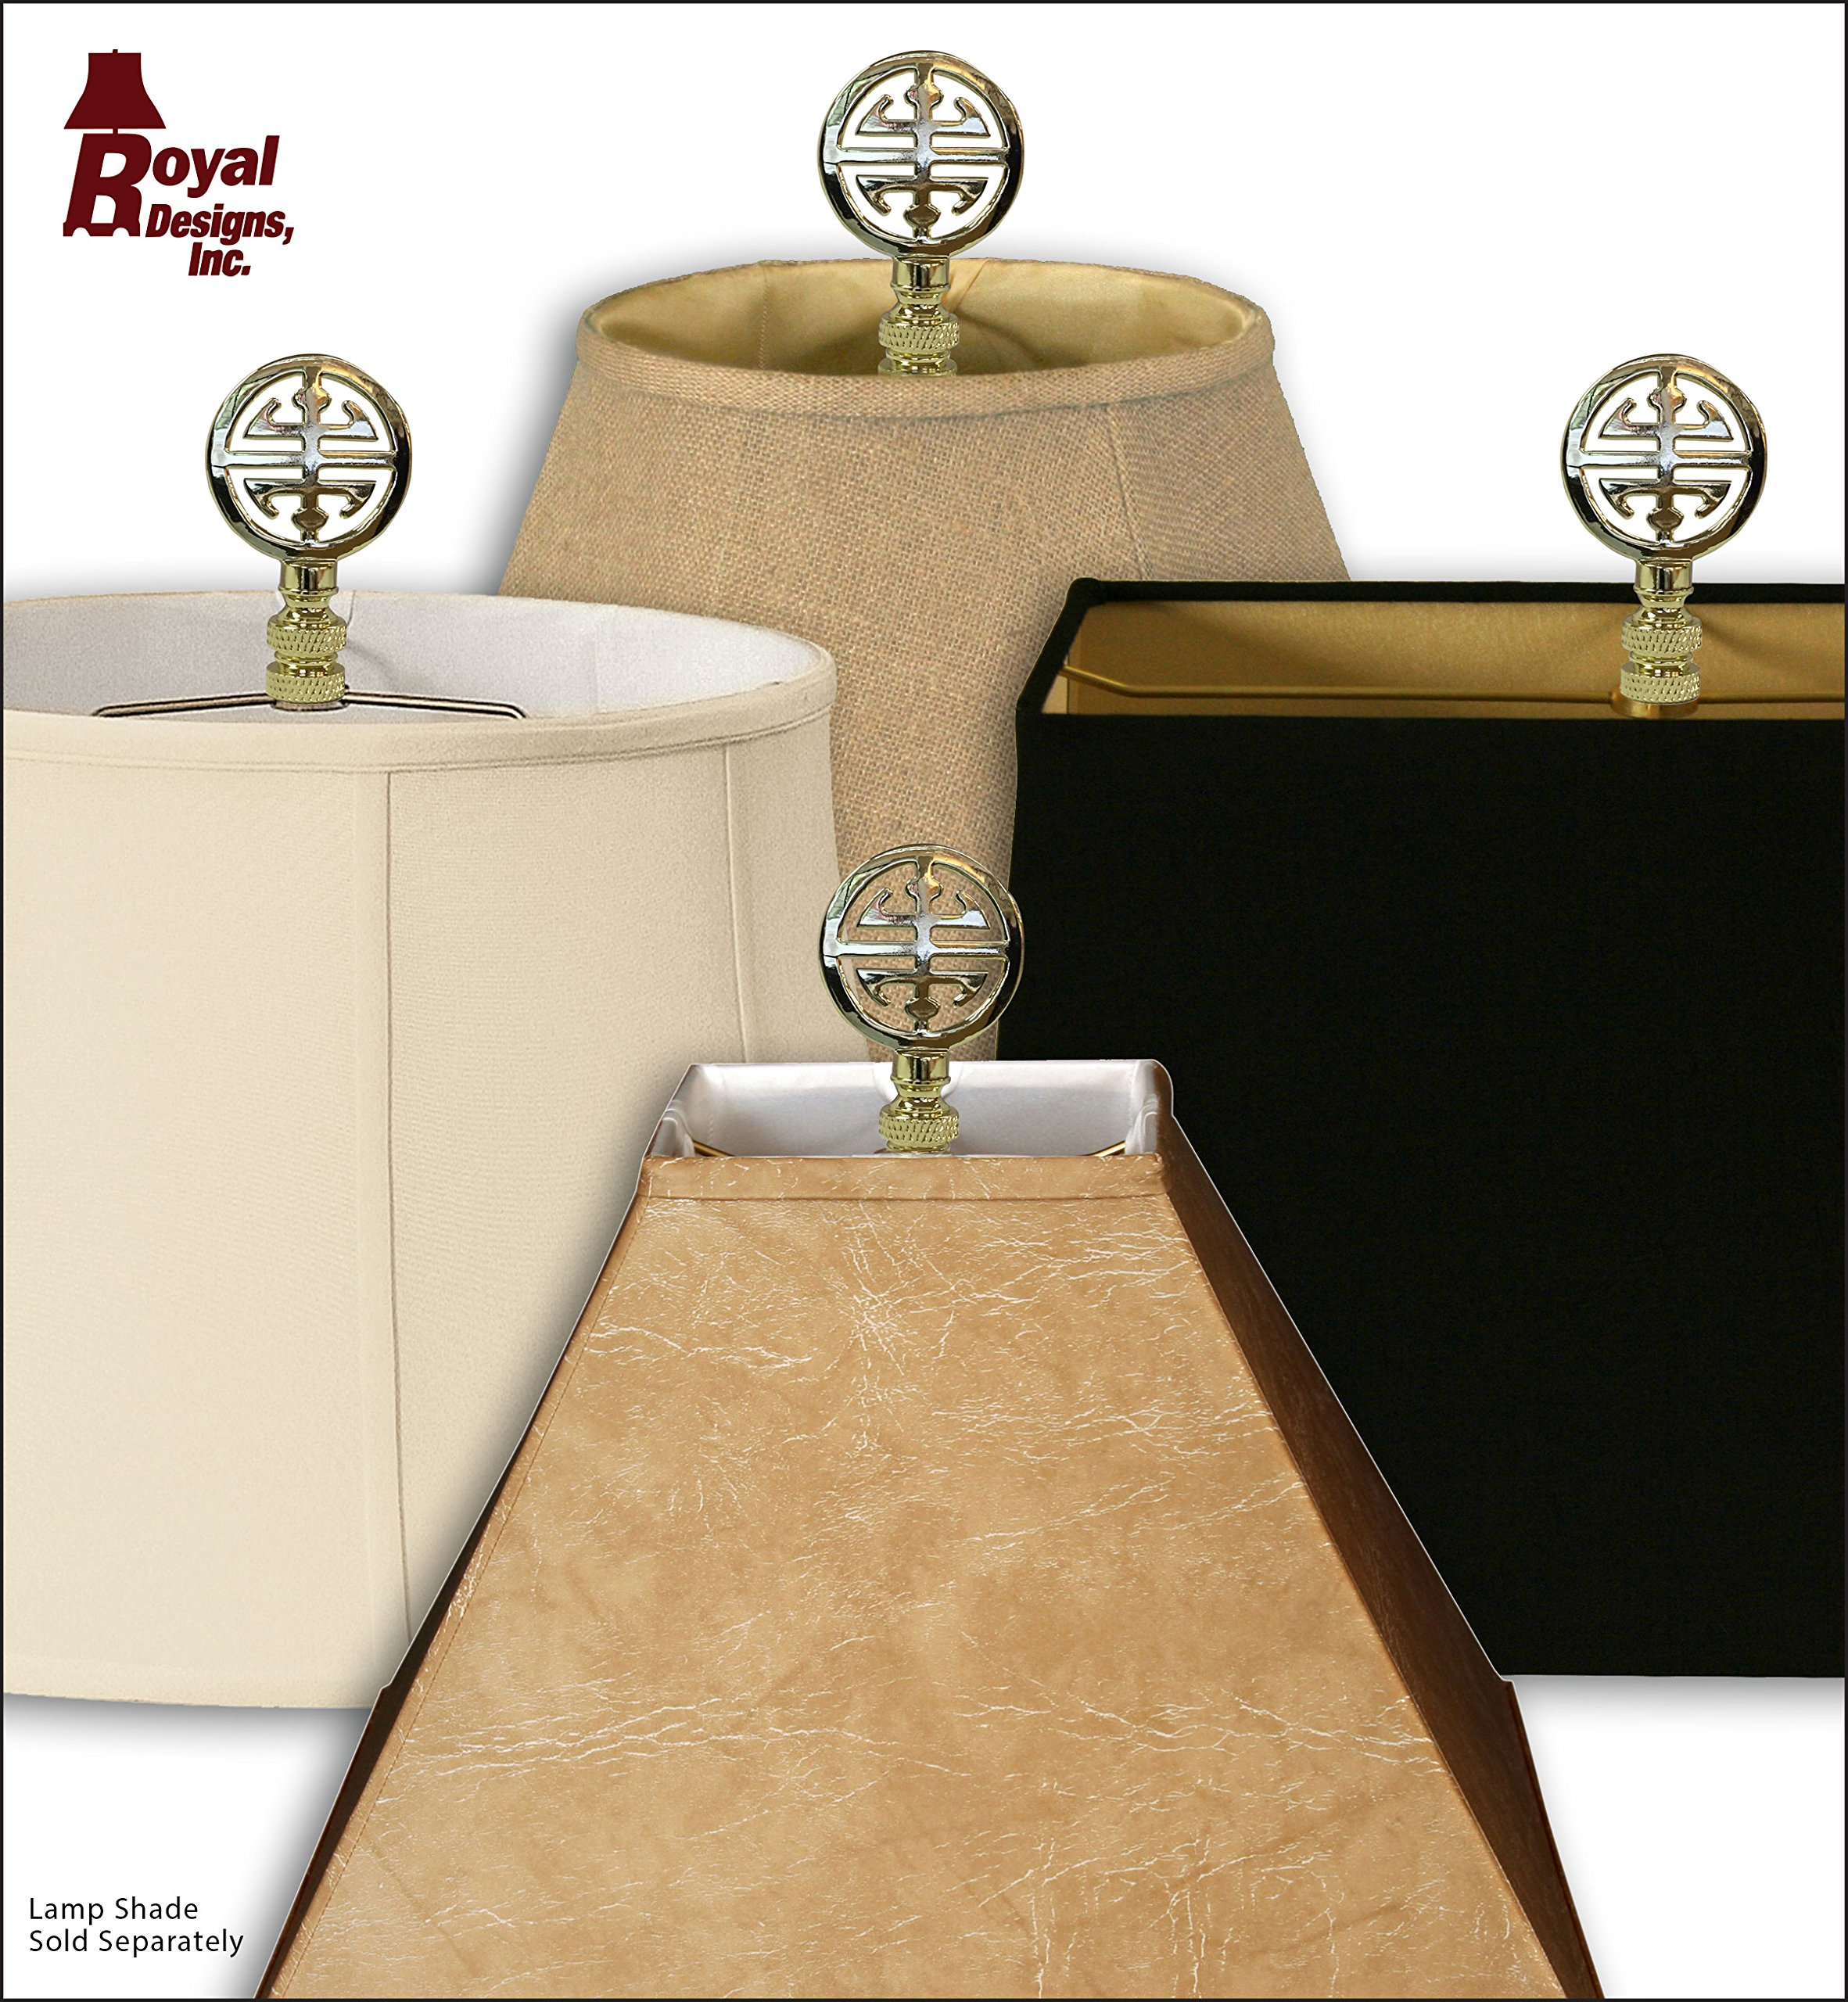 Royal Designs Oriental Happiness Symbol Lamp Finial for Lamp Shade- Polished Brass Set of 2 by Royal Designs, Inc (Image #4)